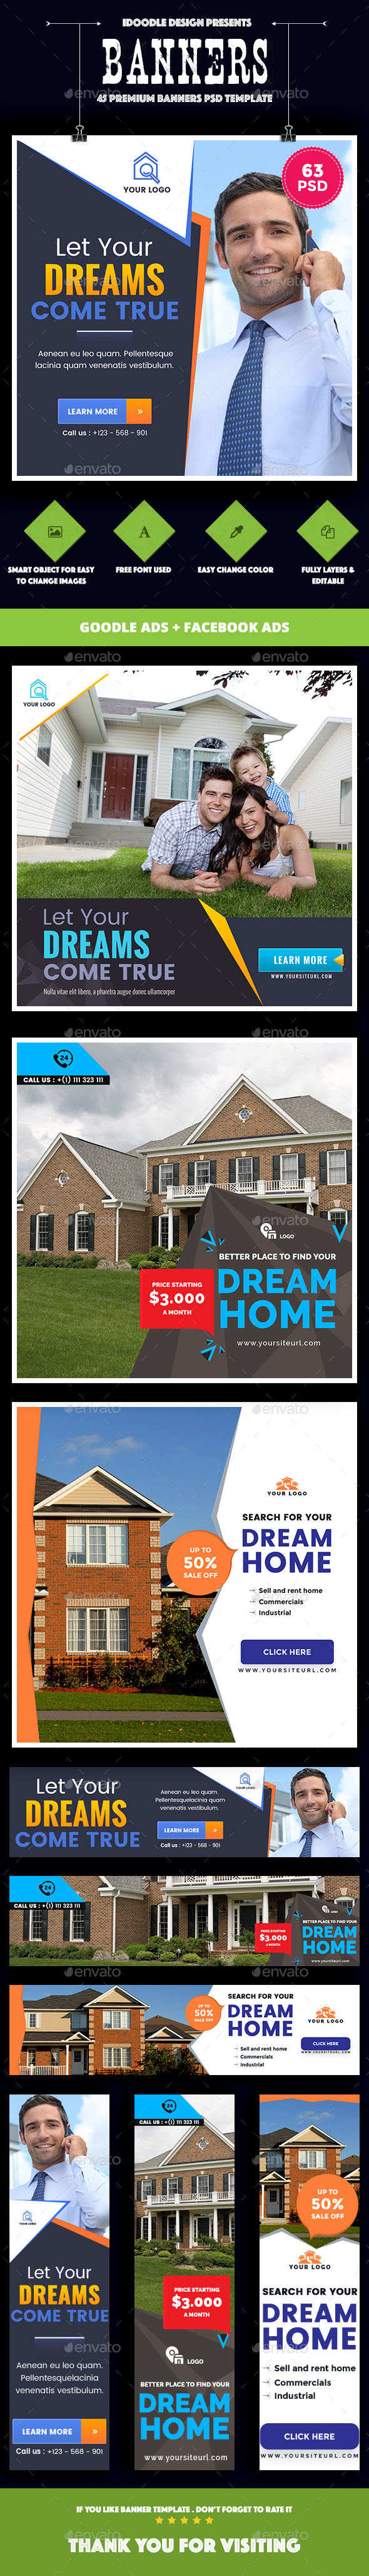 Bundle Real Estate Banners Ad - 04 Sets - Banners & Ads Web Elements